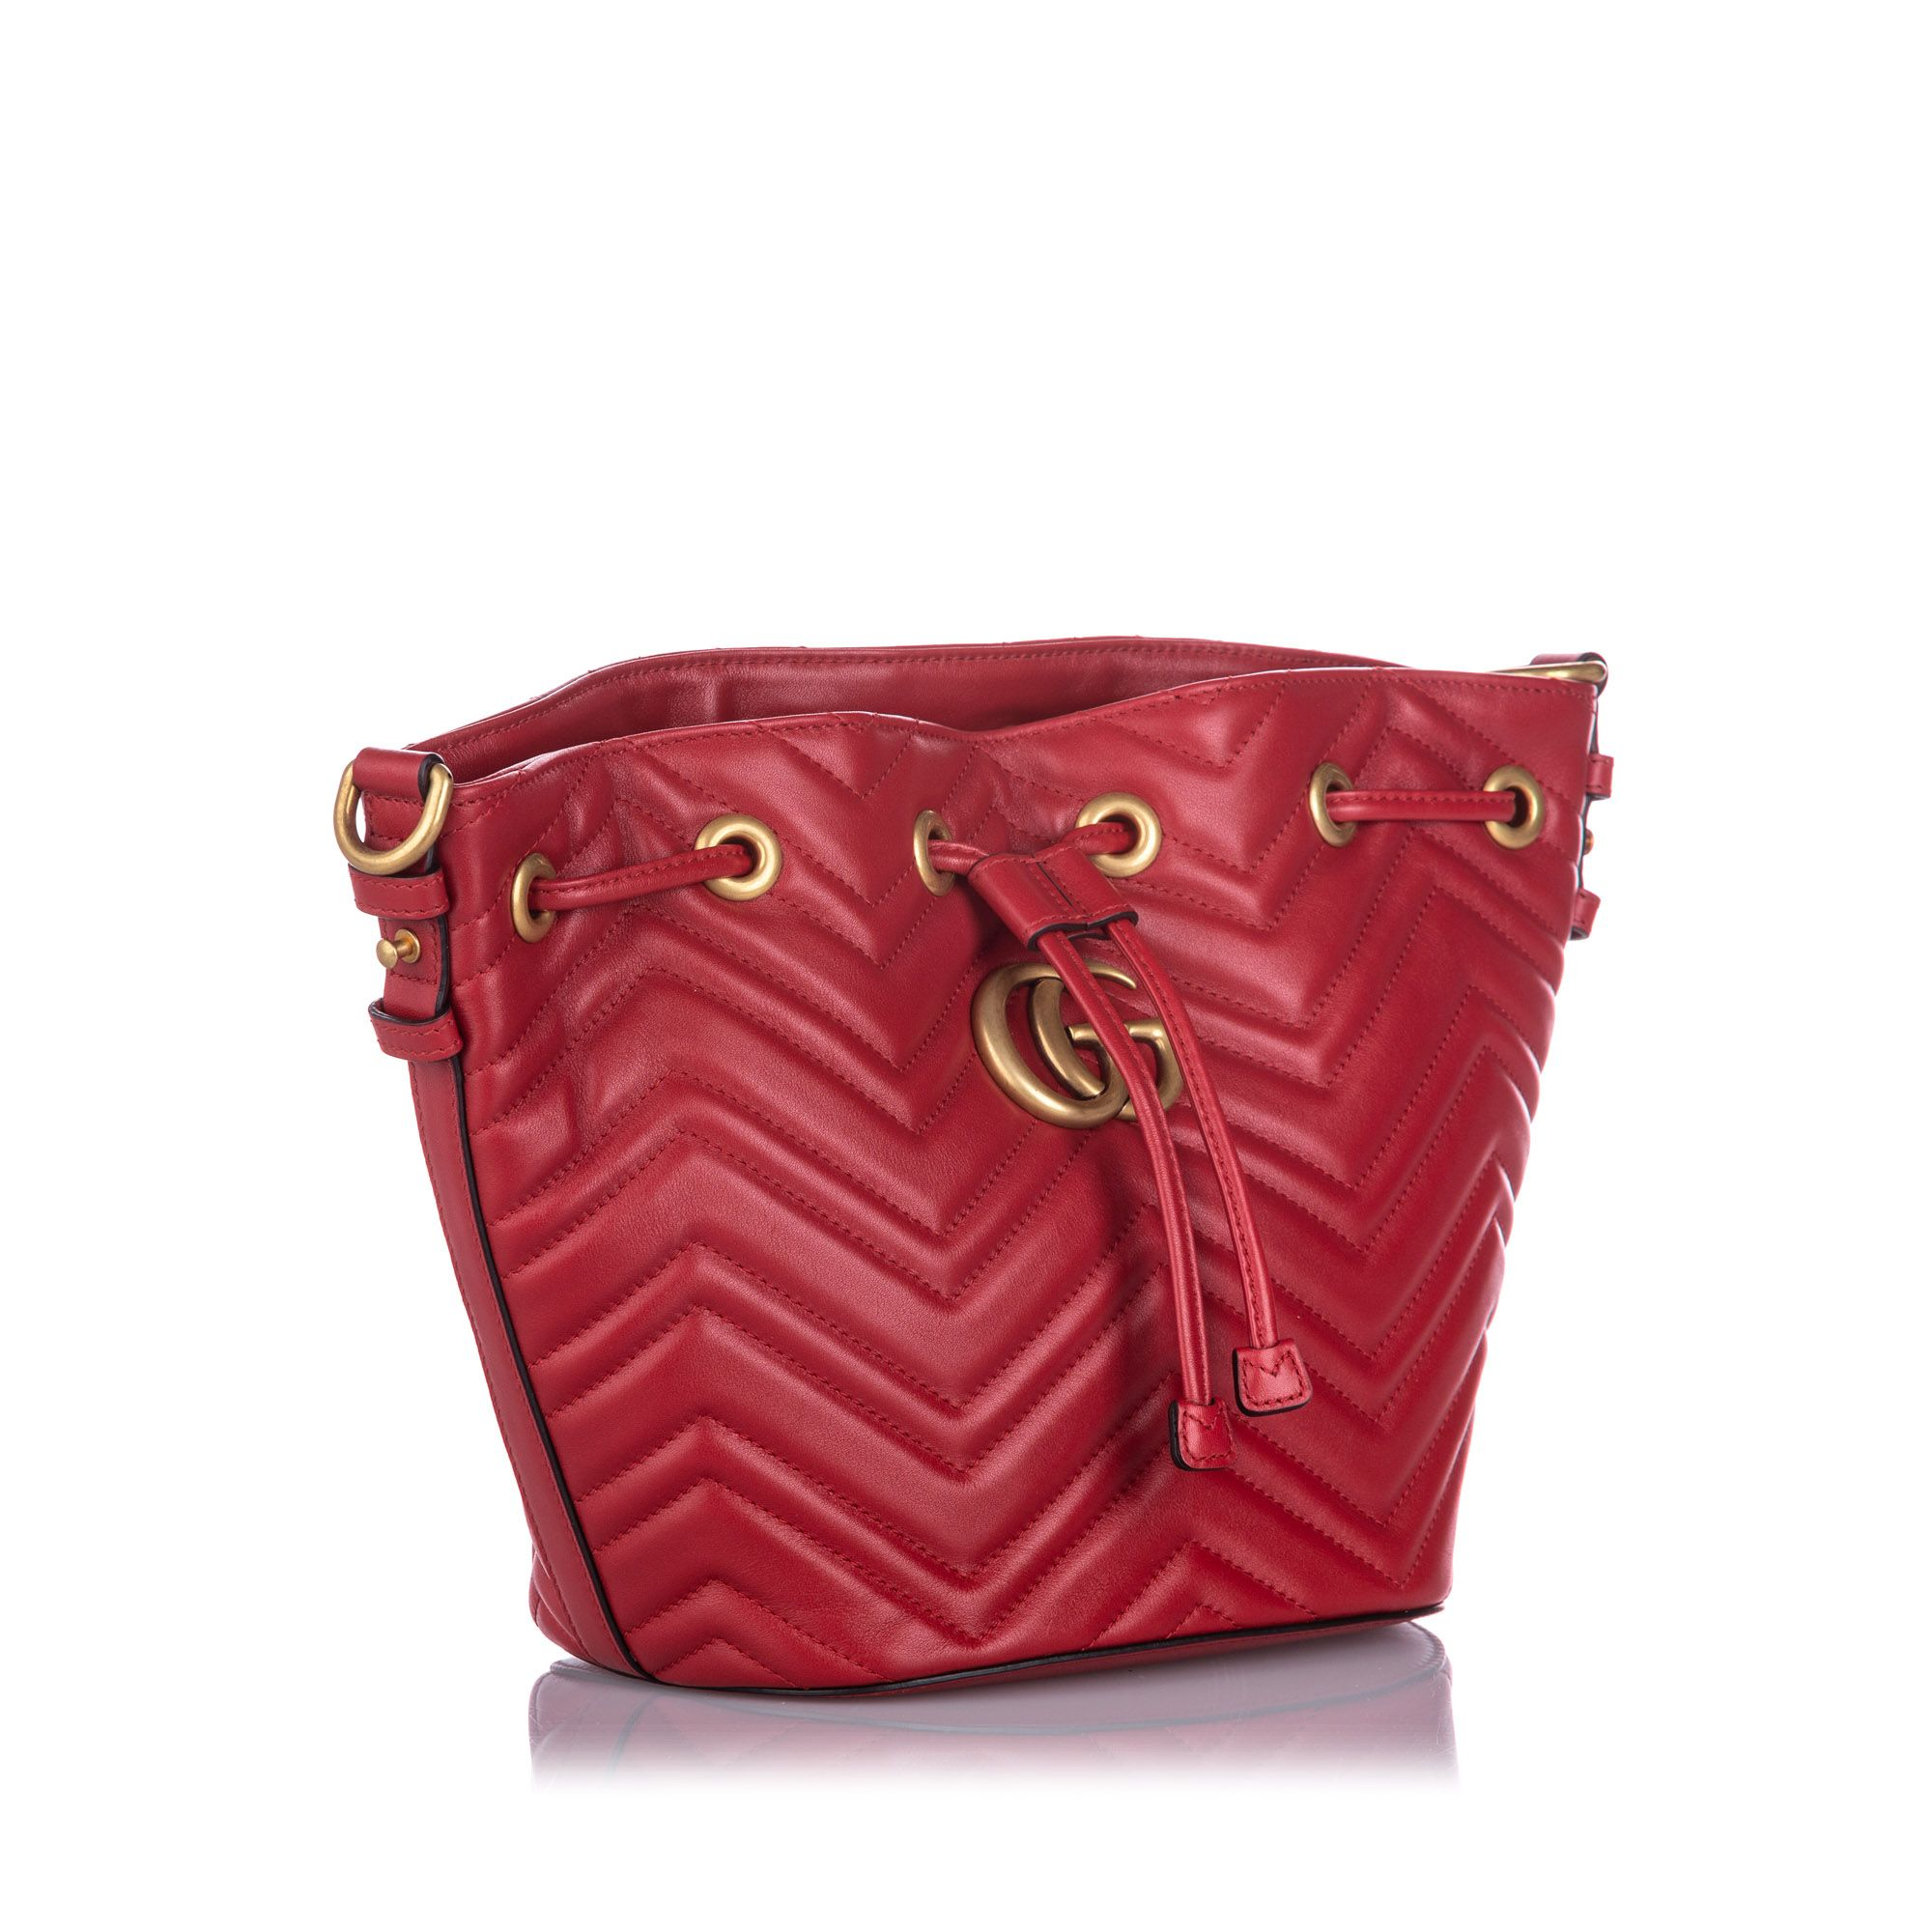 Vintage Gucci GG Marmont Bucket Bag Red